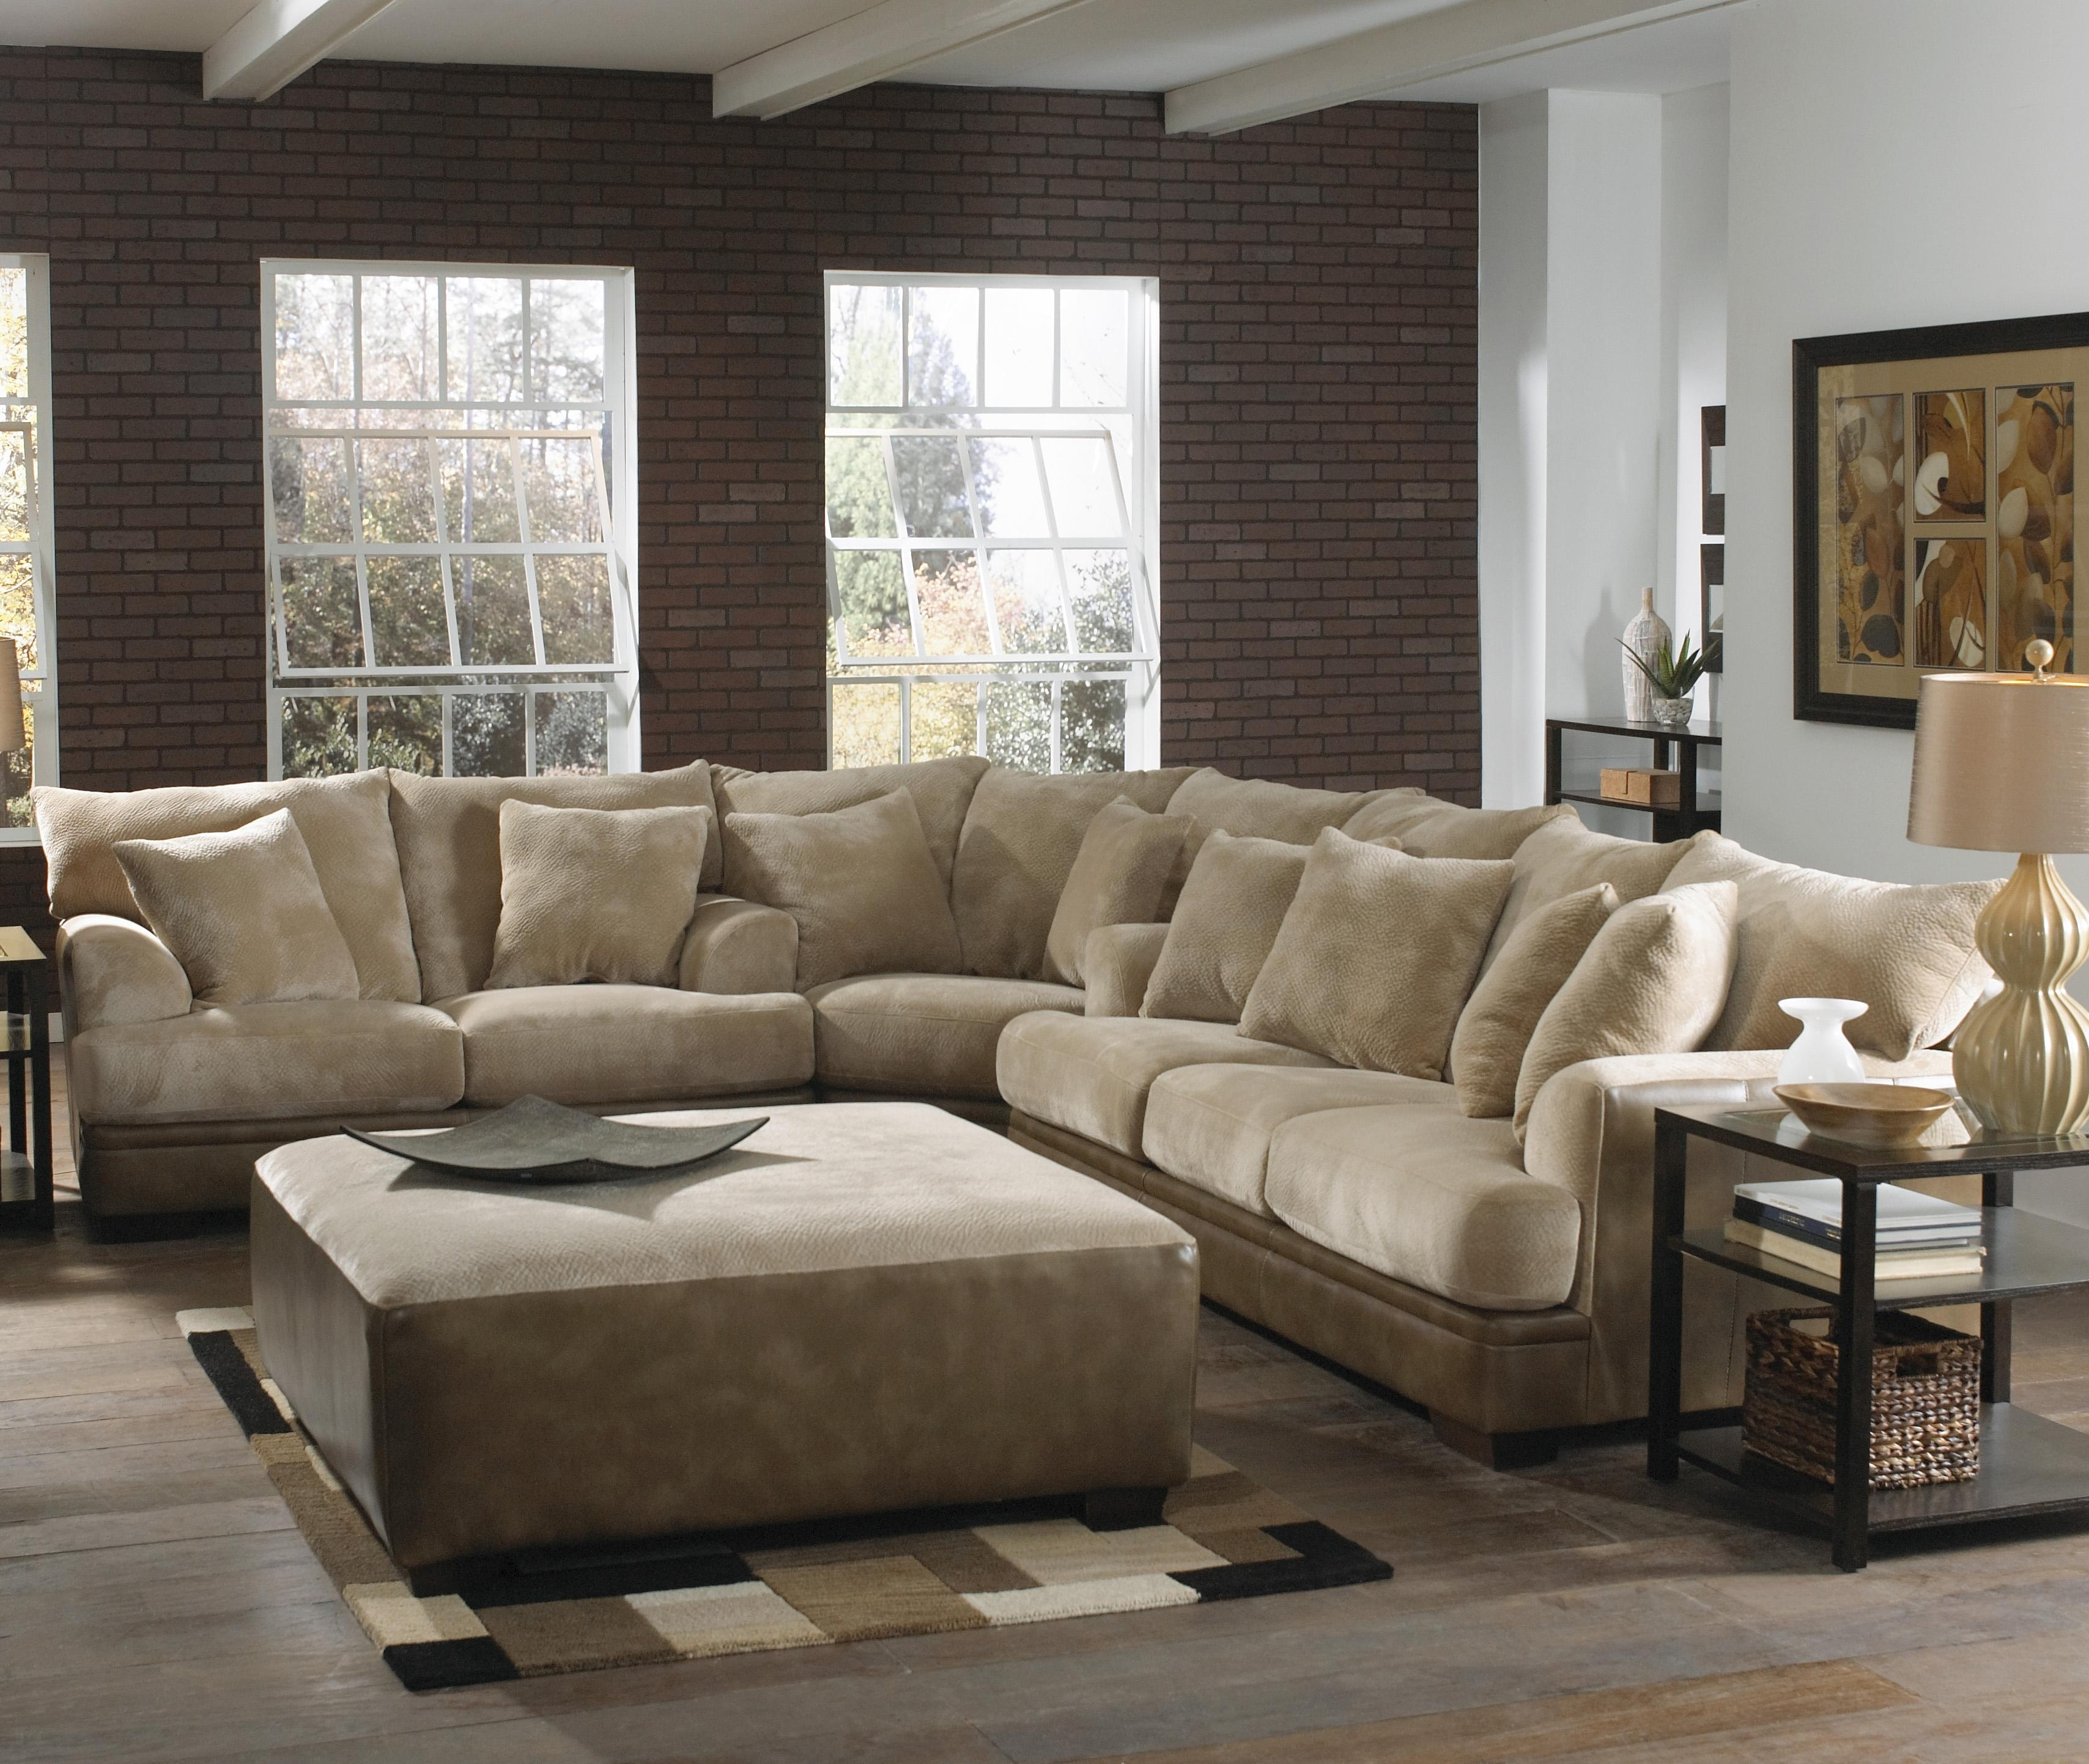 Well Known Ottawa Sale Sectional Sofas For Furniture : Family Room Sectional Sofa Novogratz Vintage Tufted (View 18 of 20)